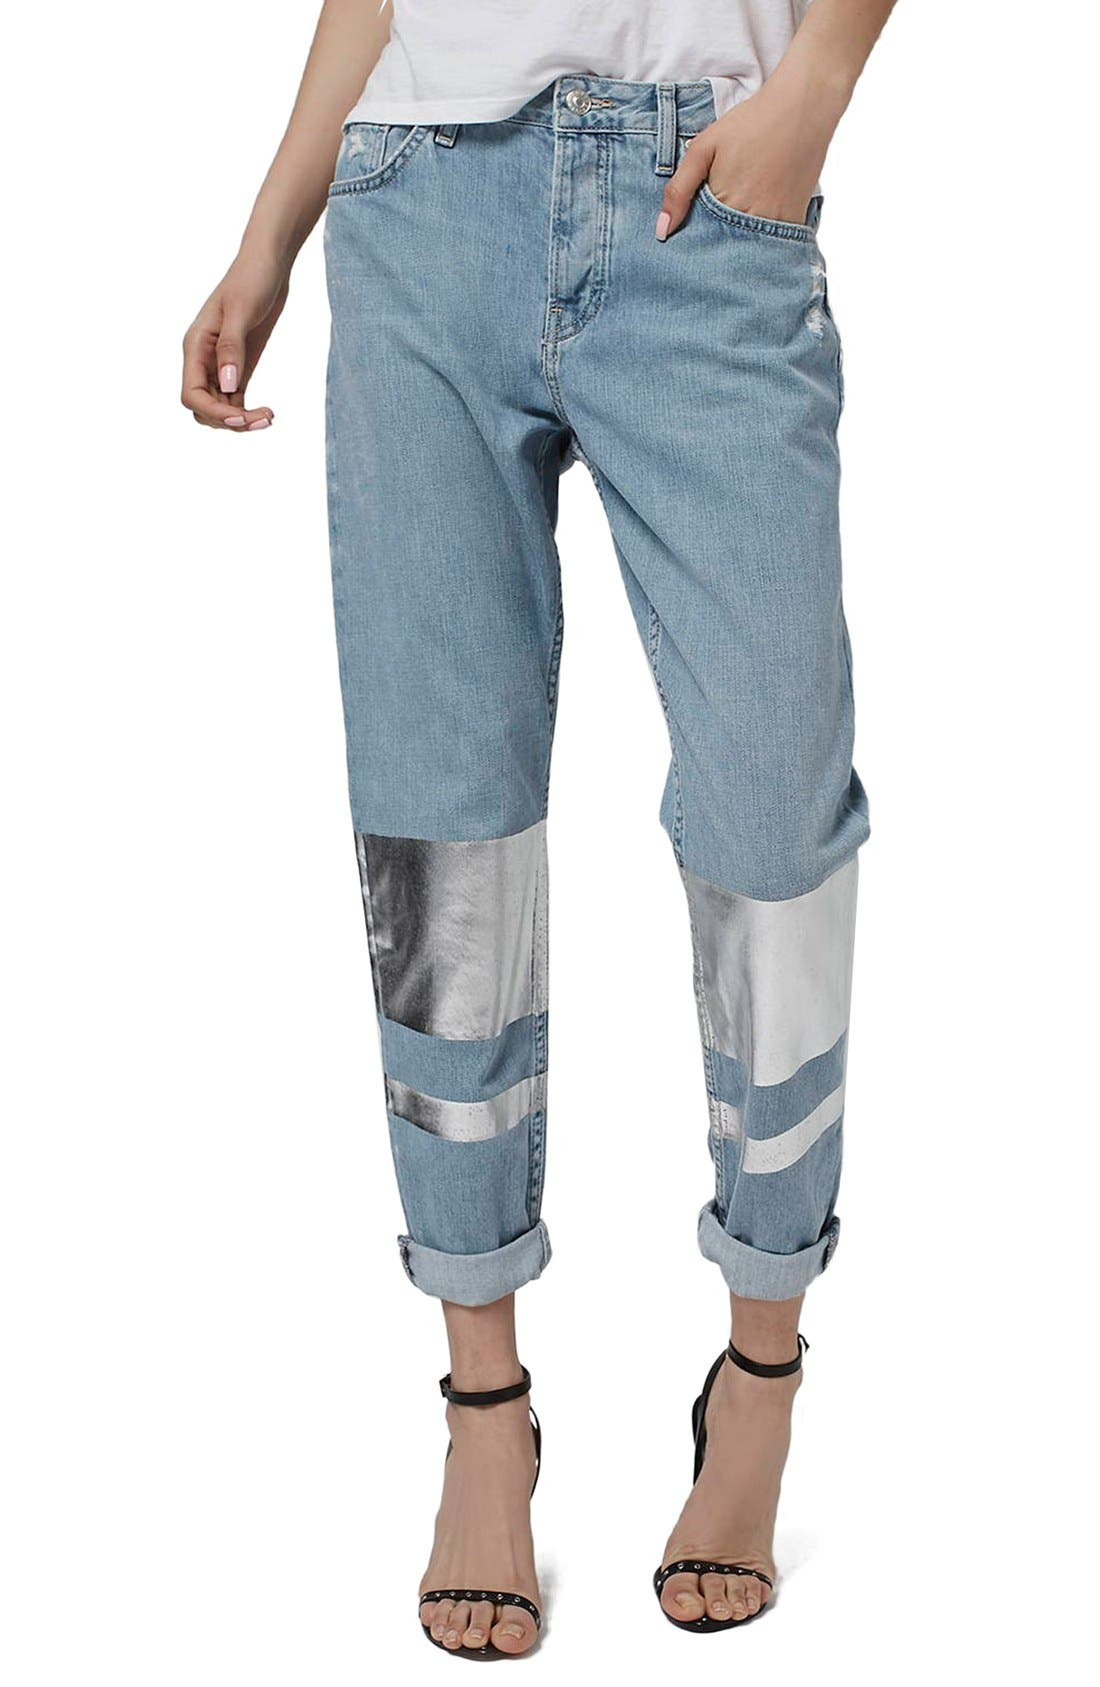 Alternate Image 1 Selected - Topshop 'Hayden' Silver Stripe Boyfriend Jeans (Petite)